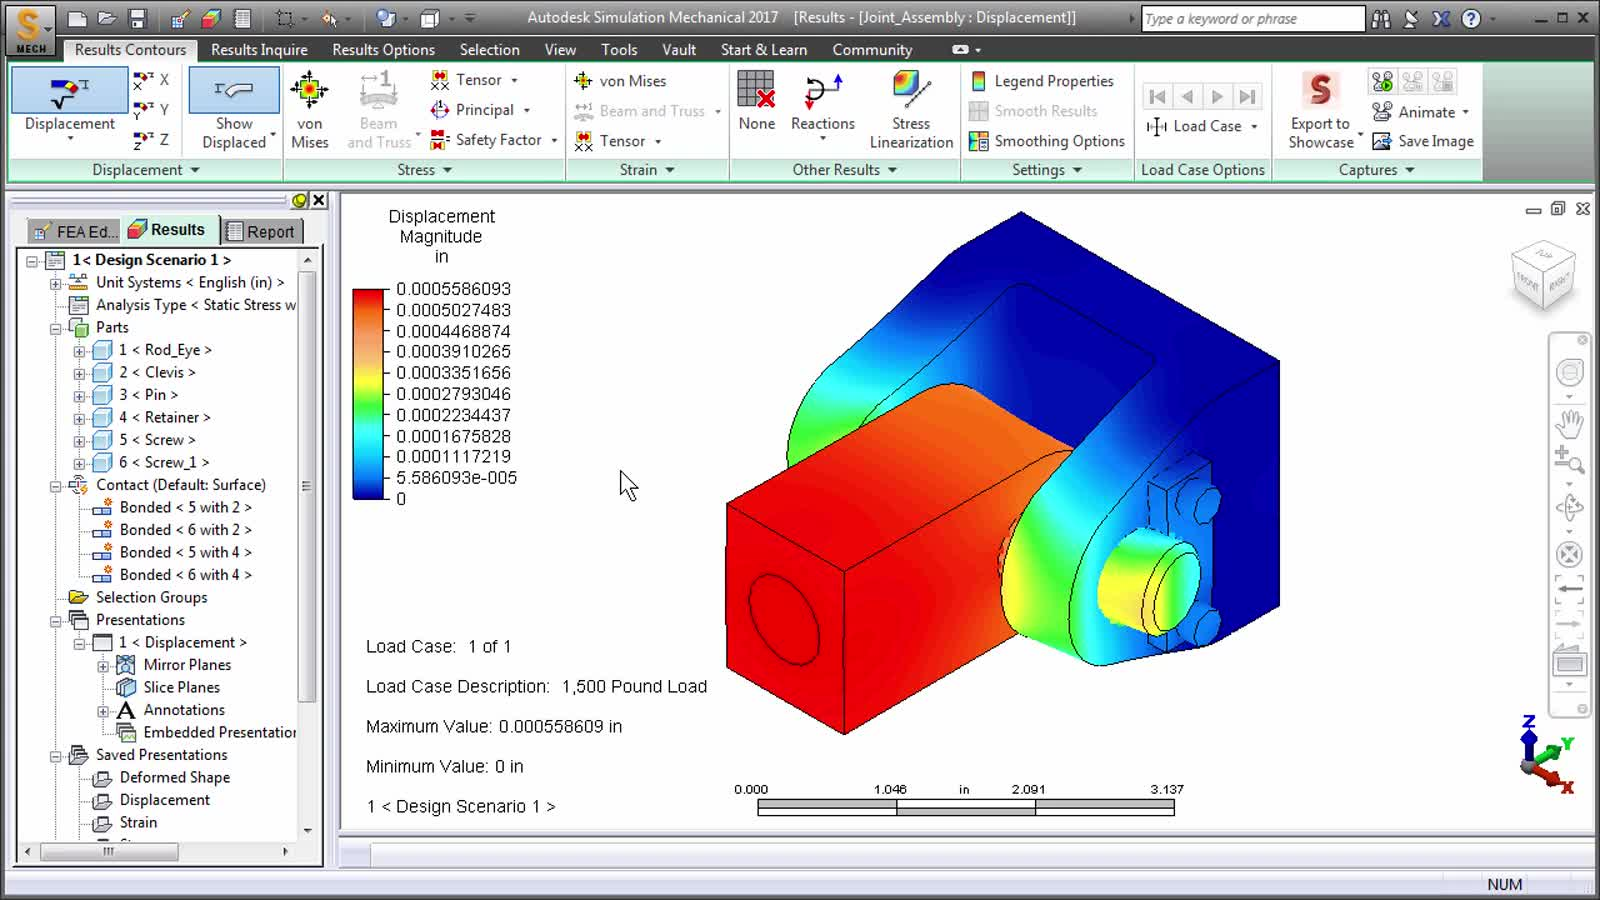 Working with Autodesk Mechanical Simulation 2017 x64 full license